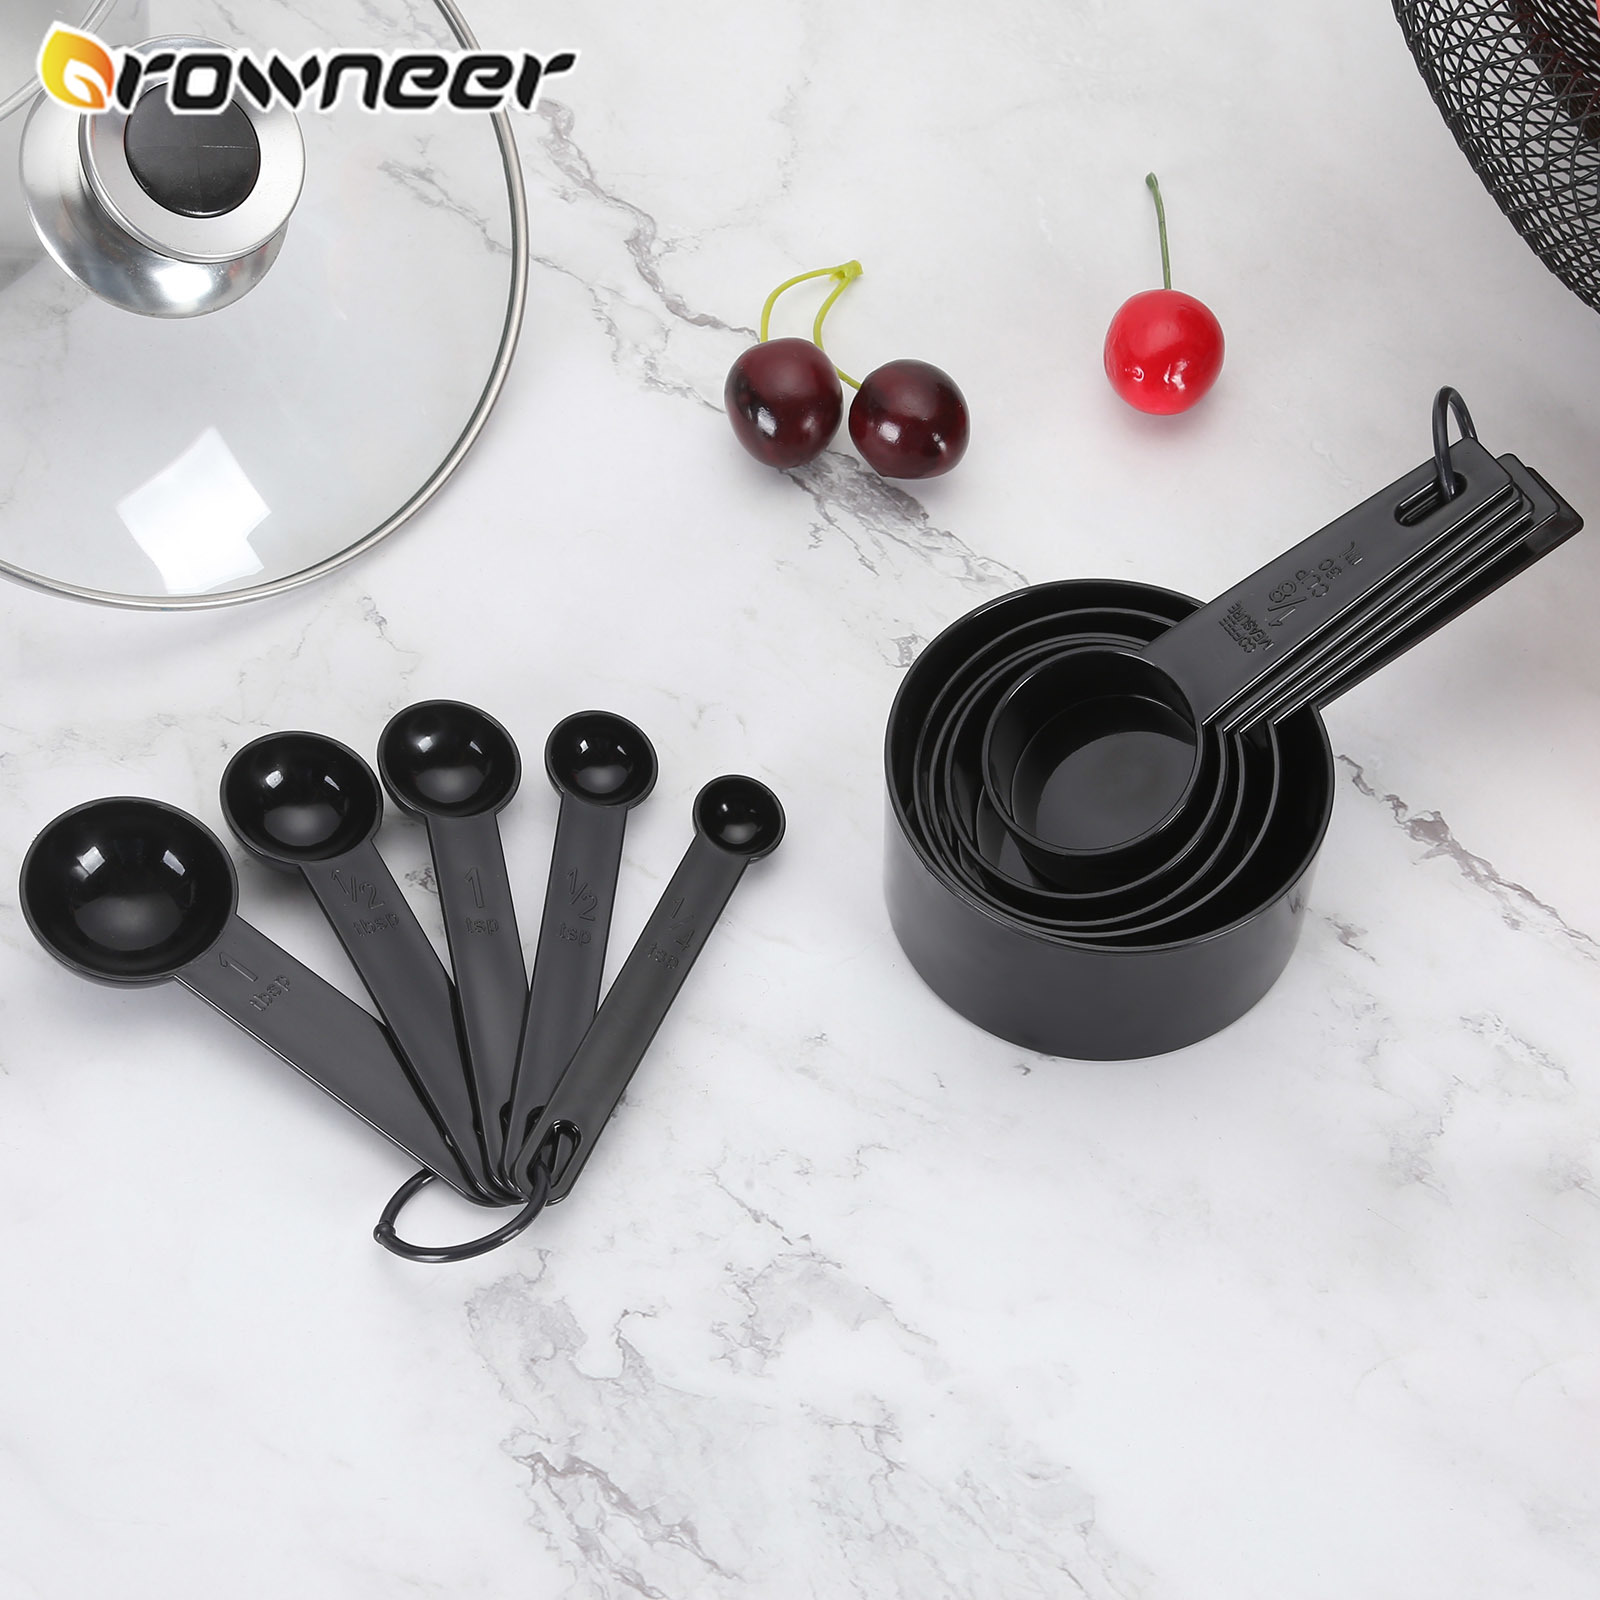 10pcs Measuring Scoop Plastic Measuring Spoon Cups Handle Measuring Set Baking Coffee Kitchen Cups Black Kitchen Cooking Tools